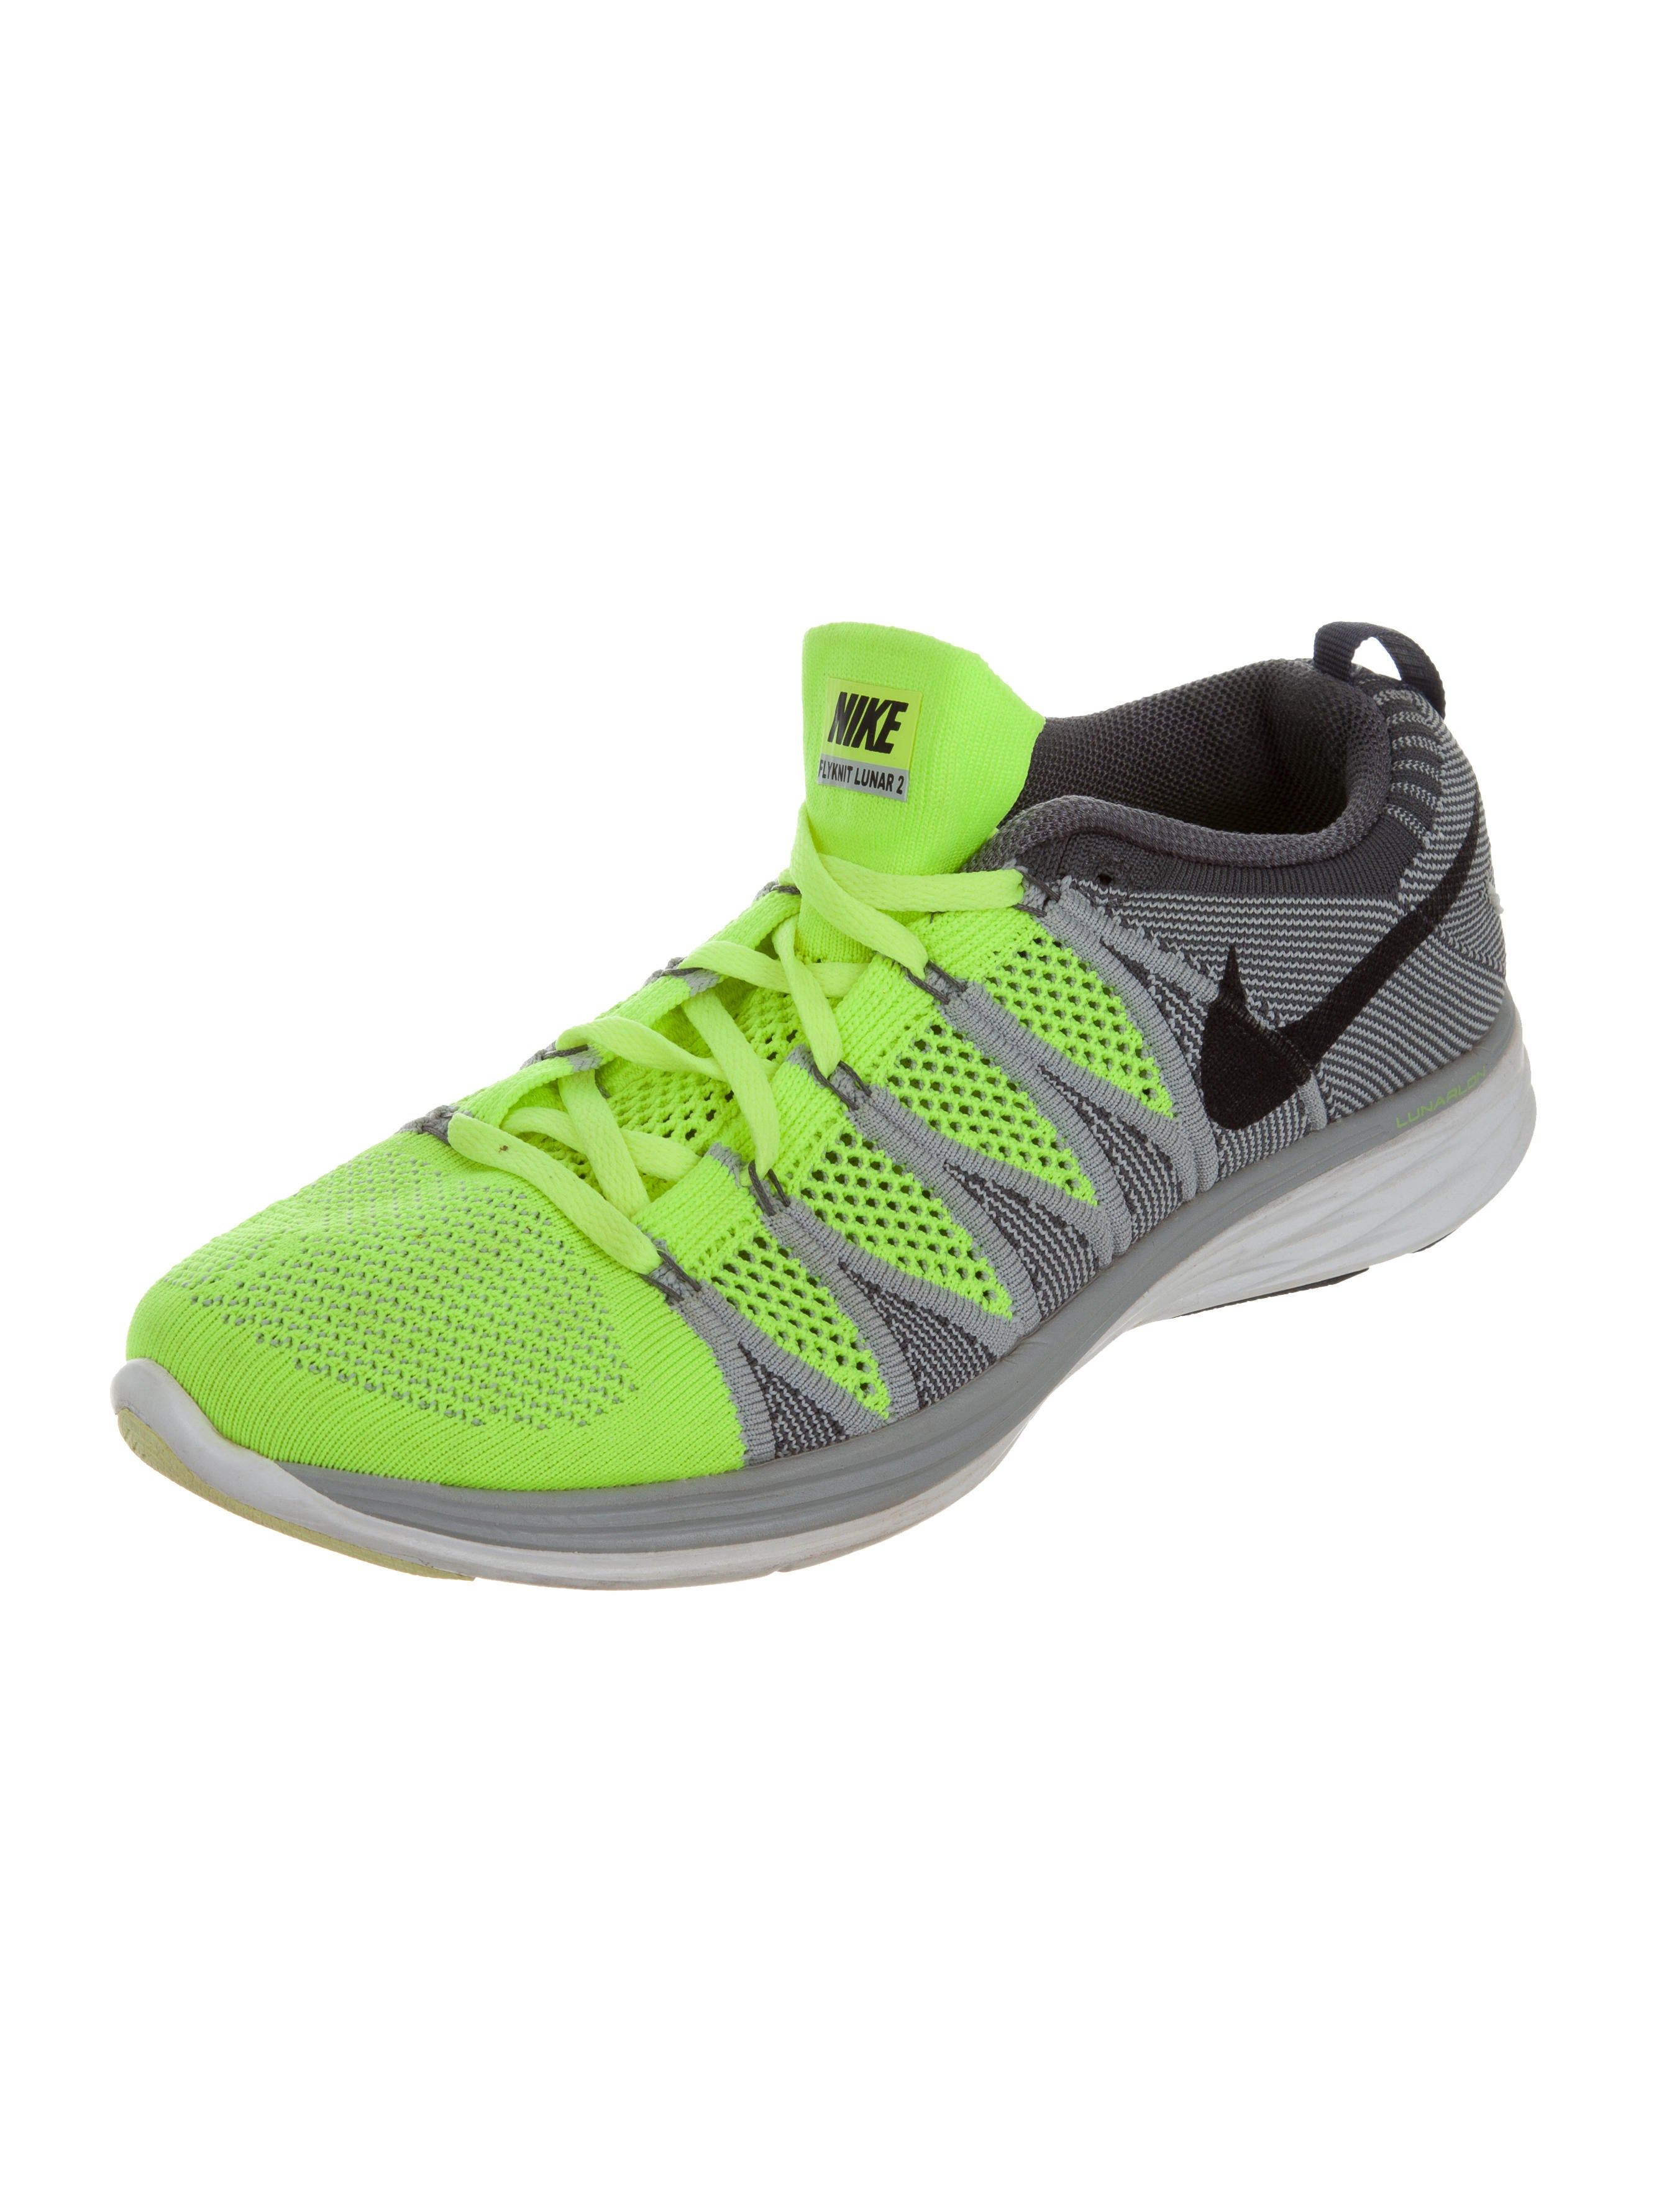 nike flyknit lunar 2 sneakers shoes wu221304 the. Black Bedroom Furniture Sets. Home Design Ideas